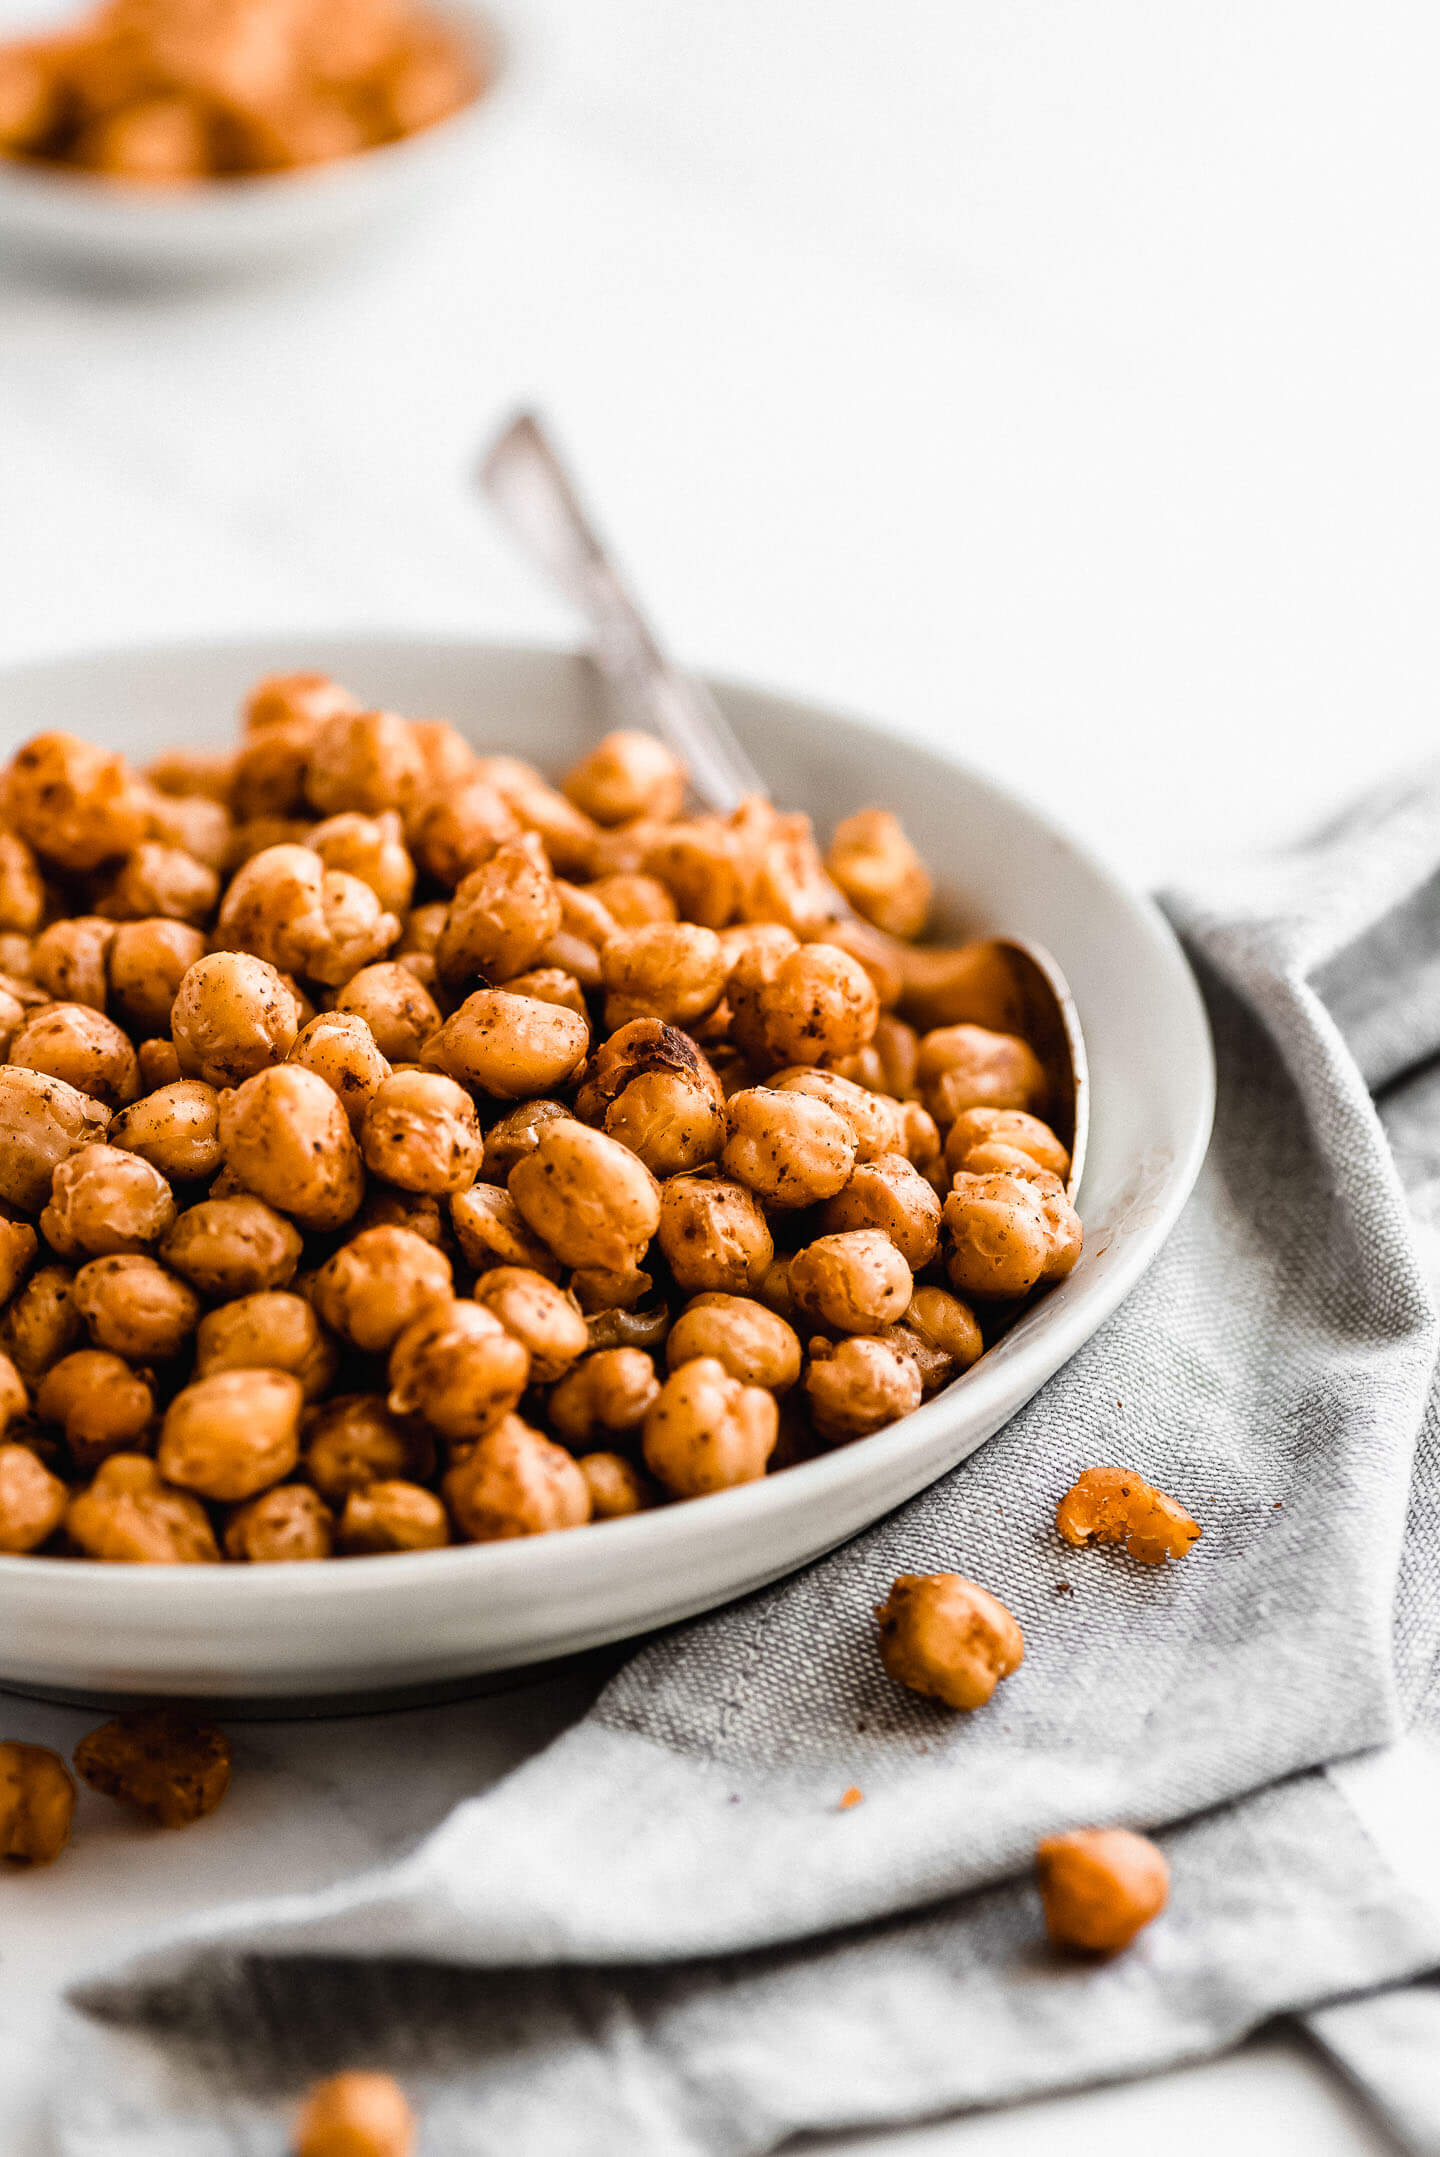 Crispy Roasted Chickpeas in a gray bowl with a spoon in the side and a napkin underneath with a few chickpeas on it.